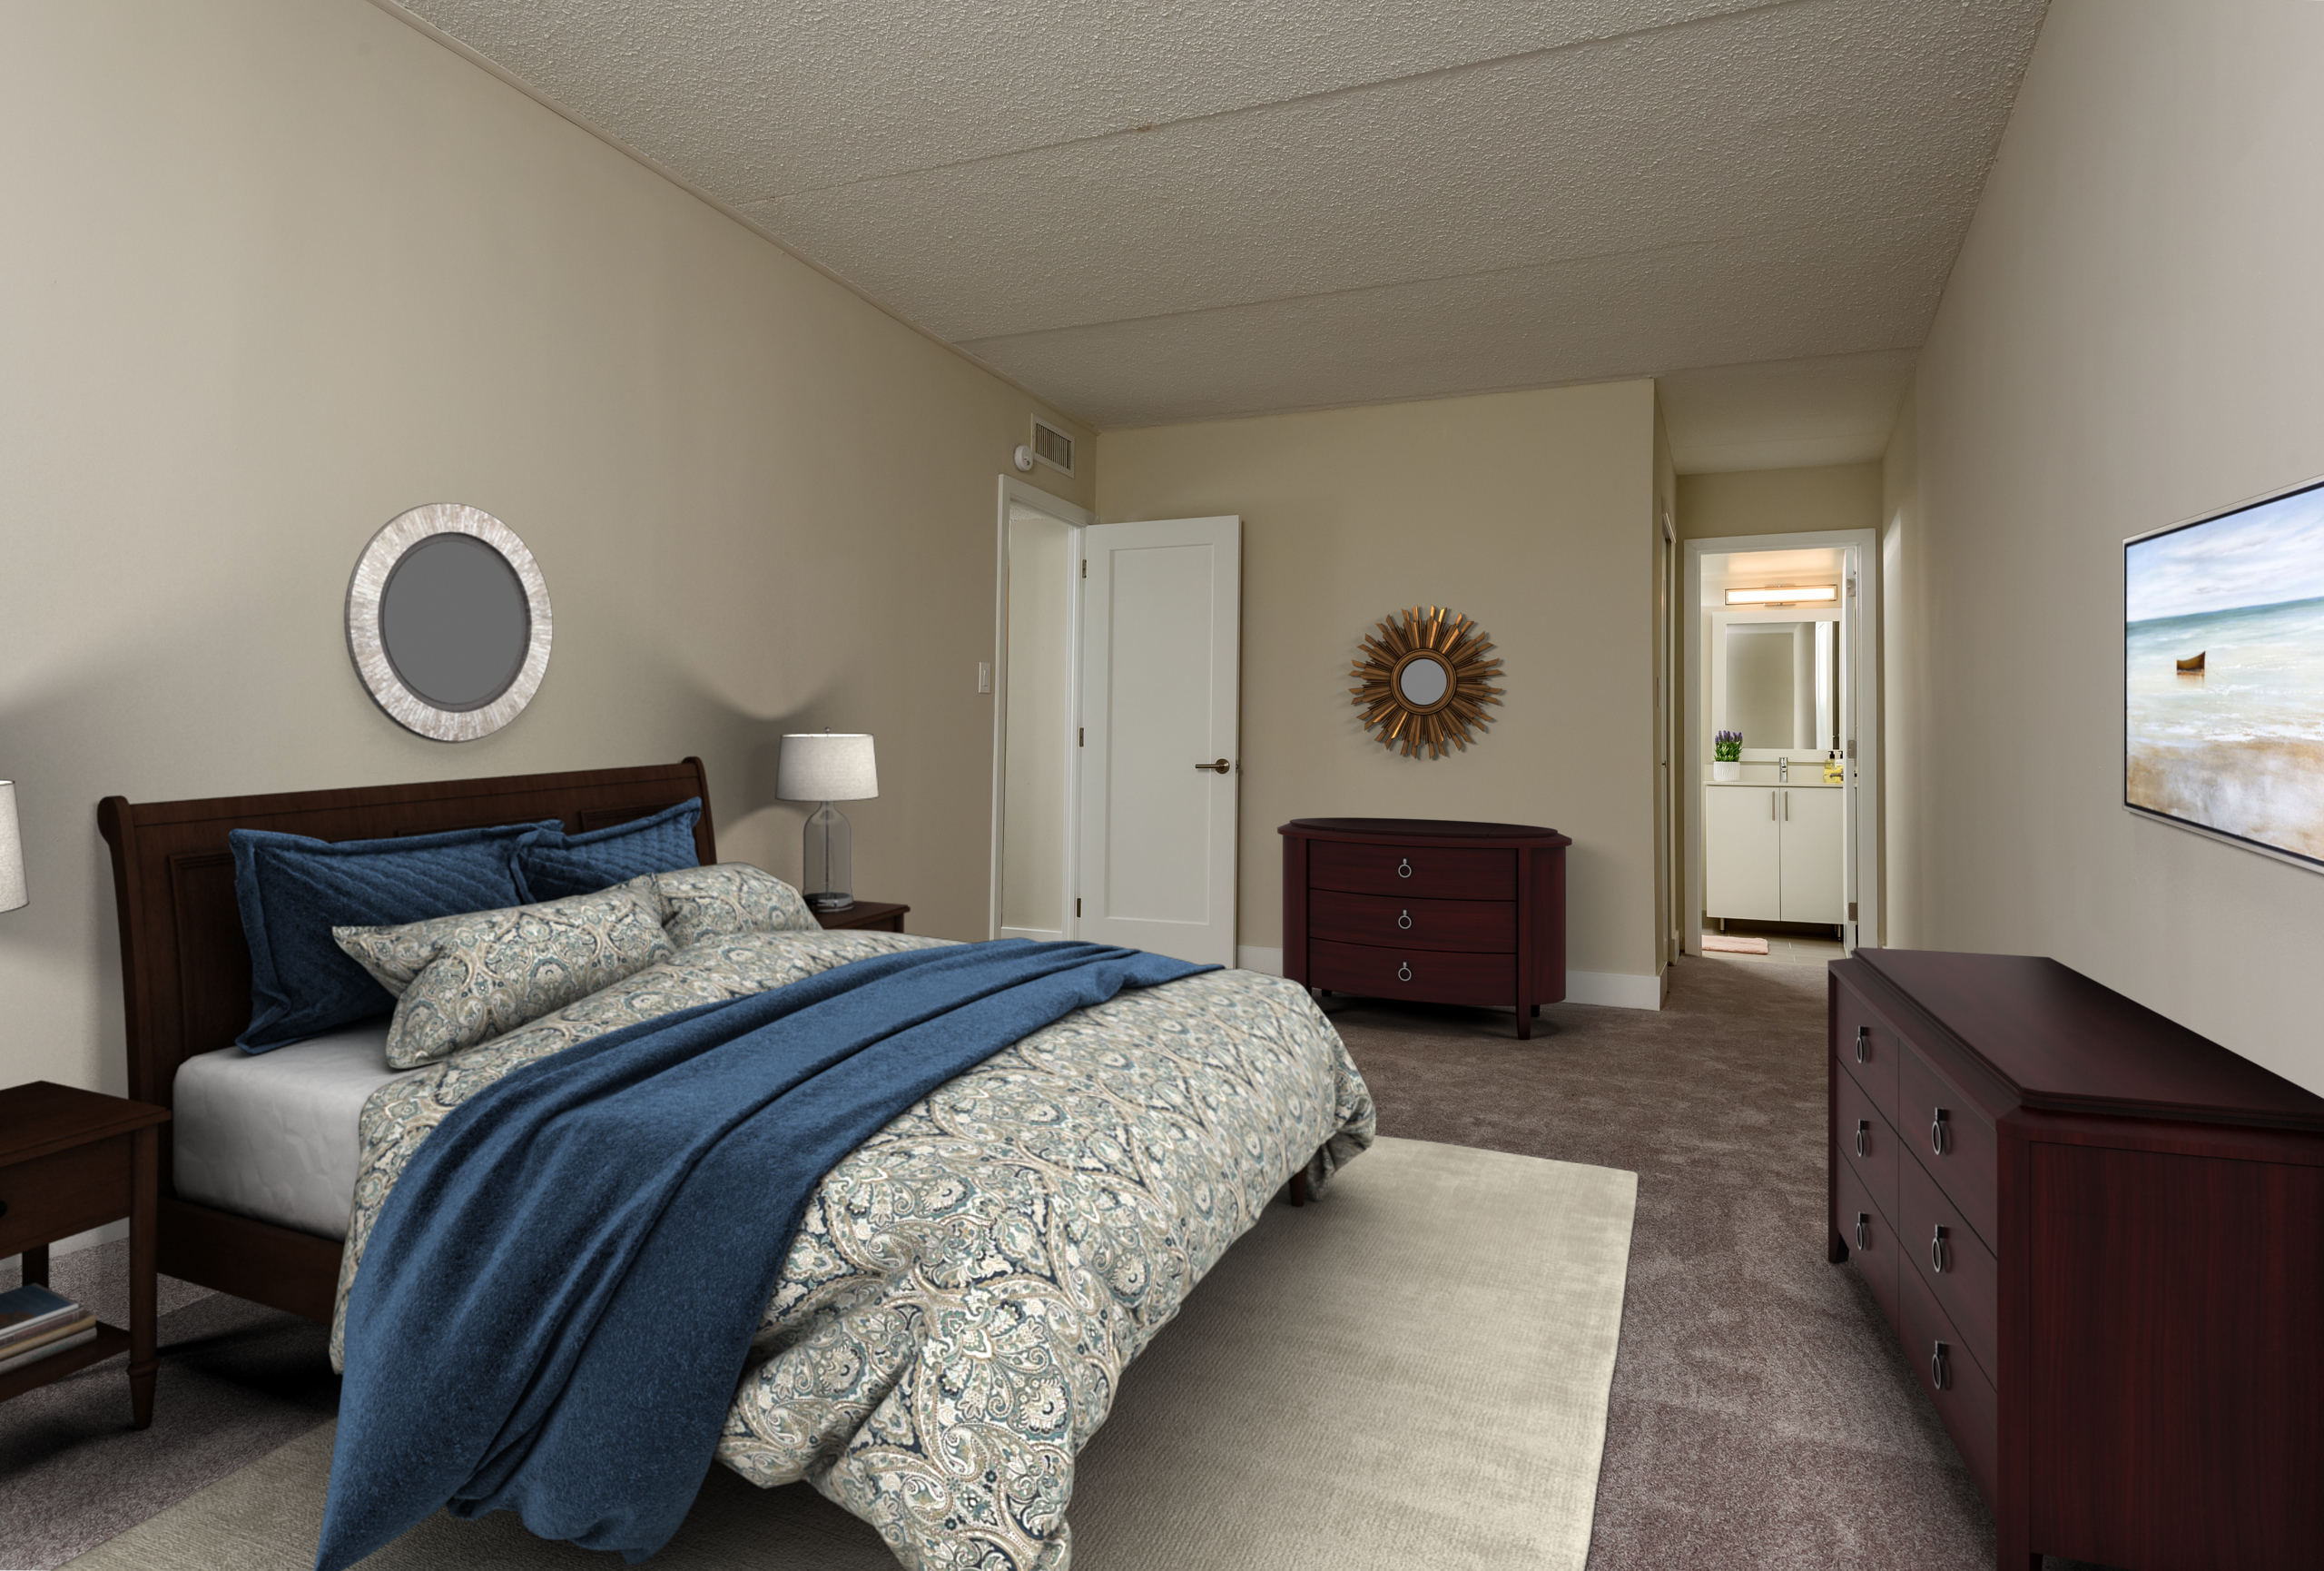 bedroom in a King of Prussia apartment rental at Valley Forge Towers